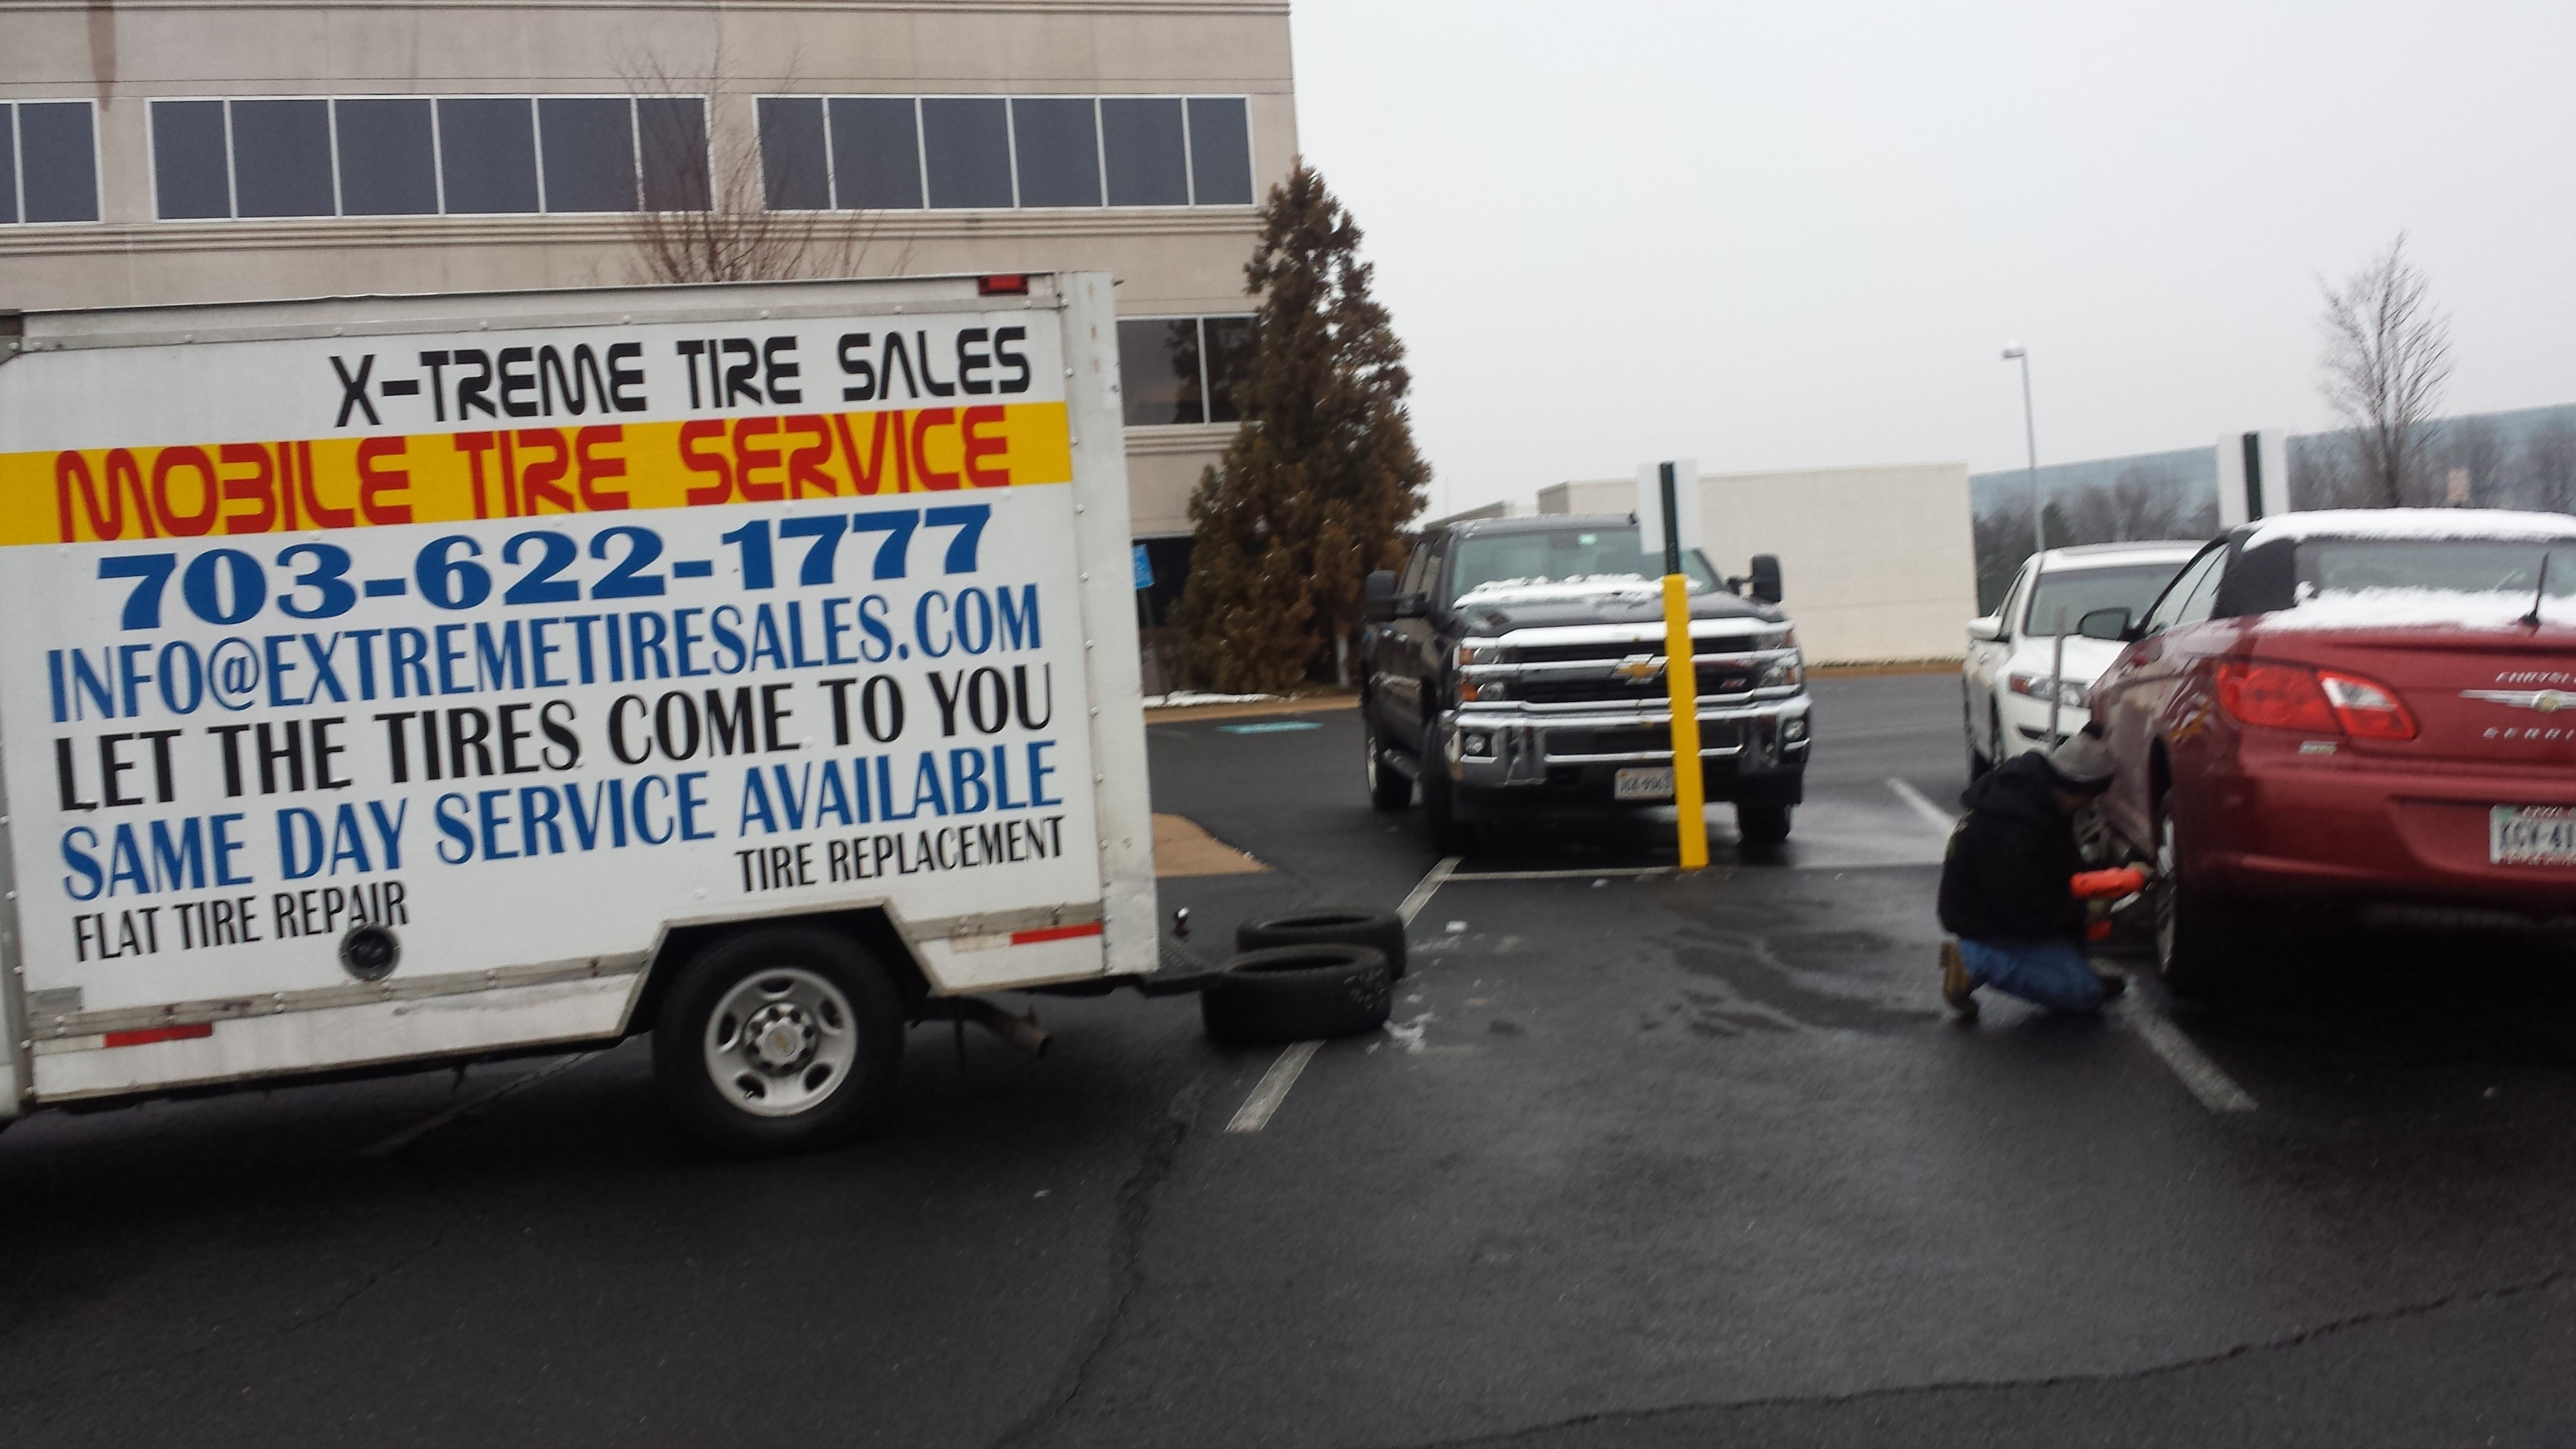 Our Mobile Tire Service Installs Tires At Your Work Or Home